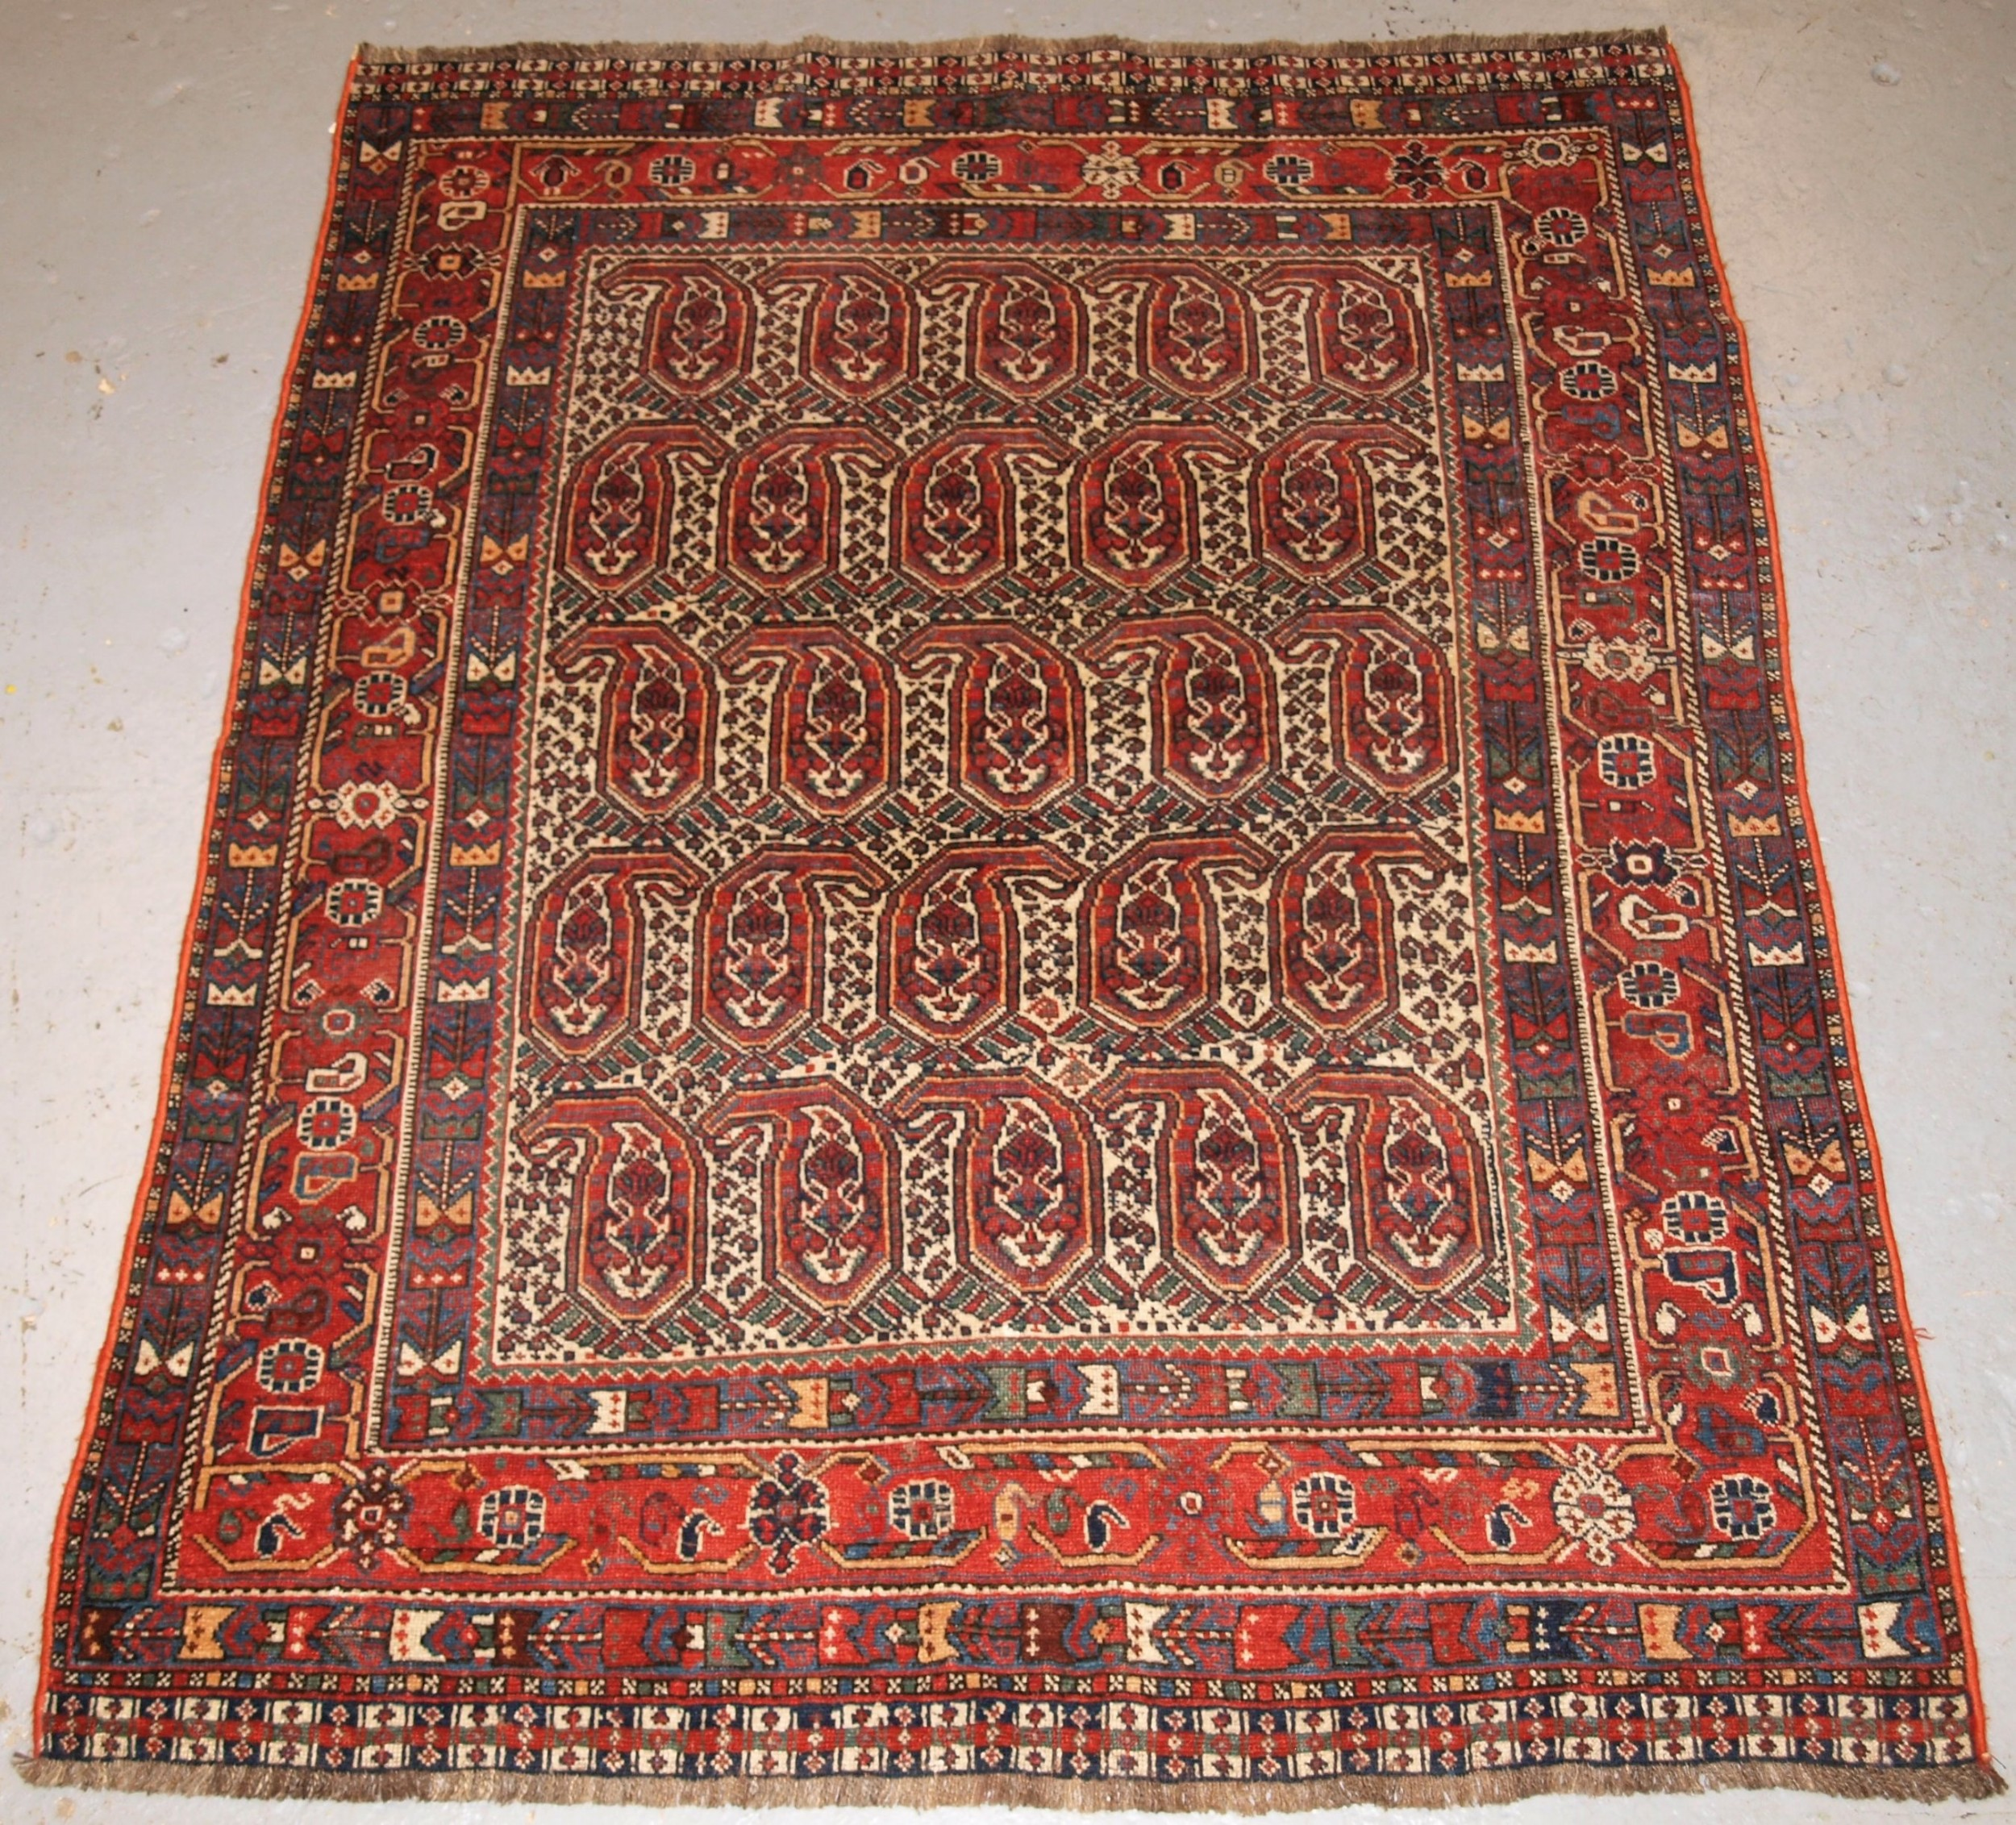 antique south west persian khamseh rug with repeat boteh design circa 1900